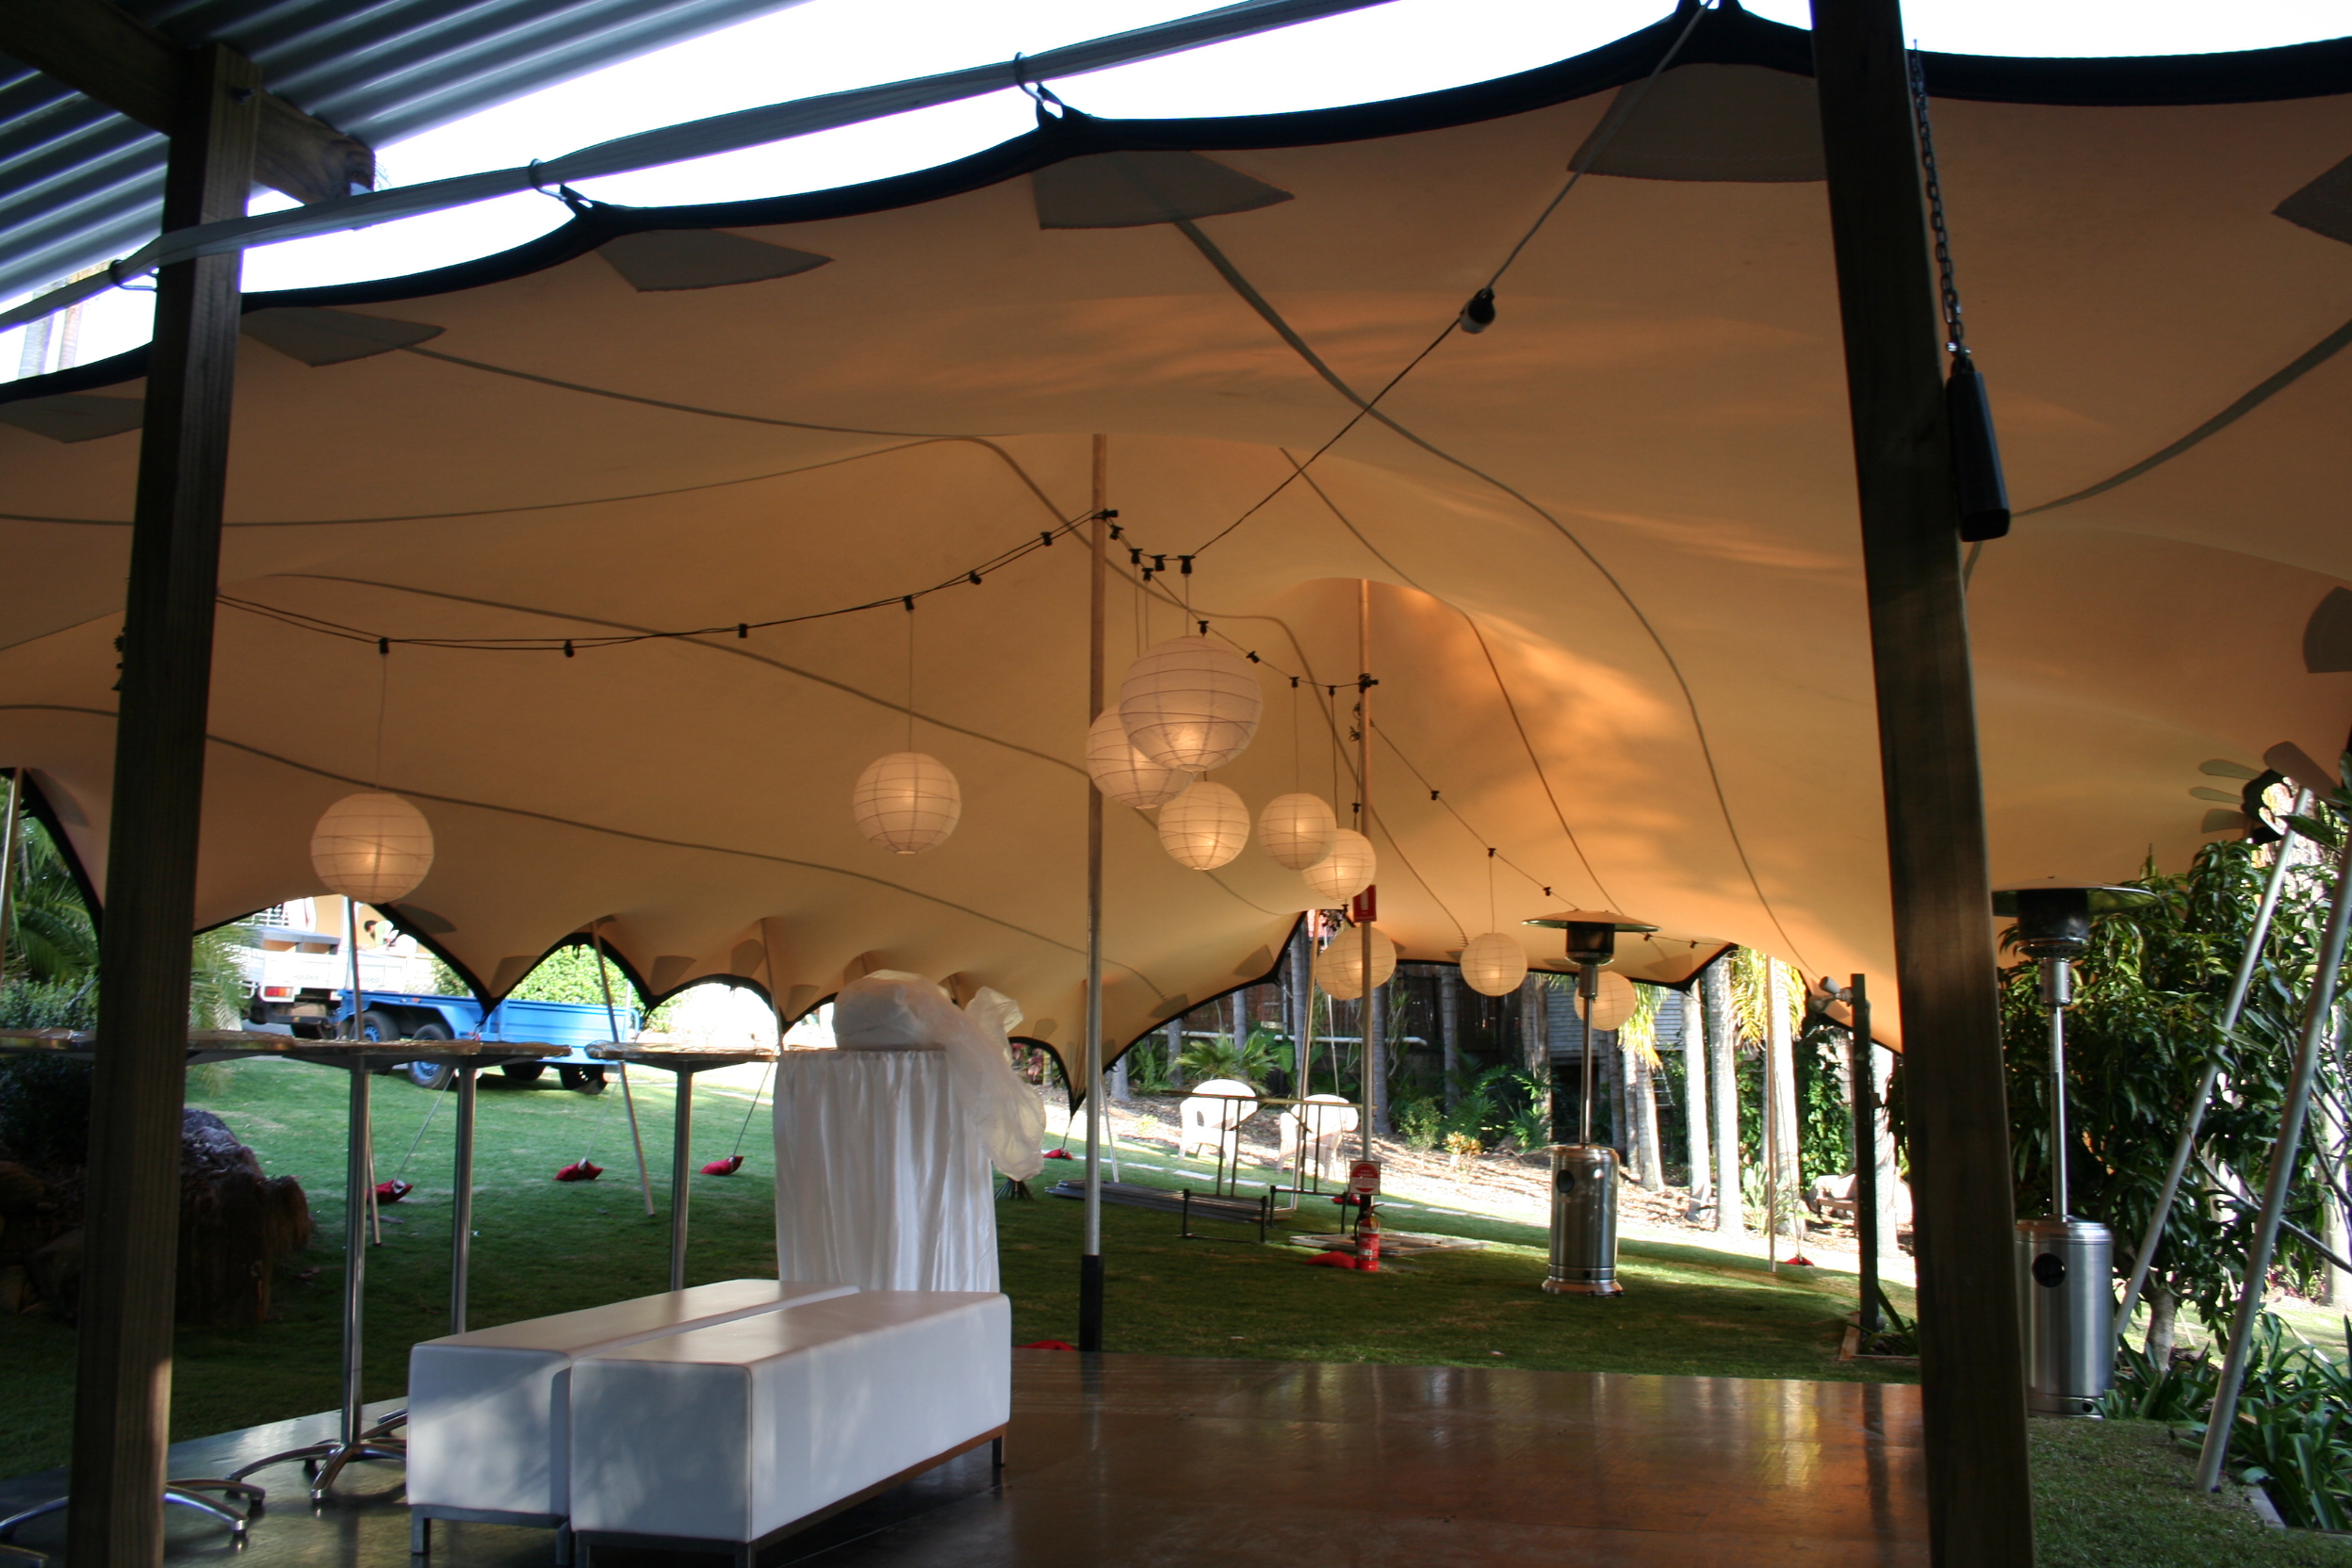 Marquee tent hire for events & Stretch Tents u0026 Marquee Hire Sydney - Nomadic Tents Australia